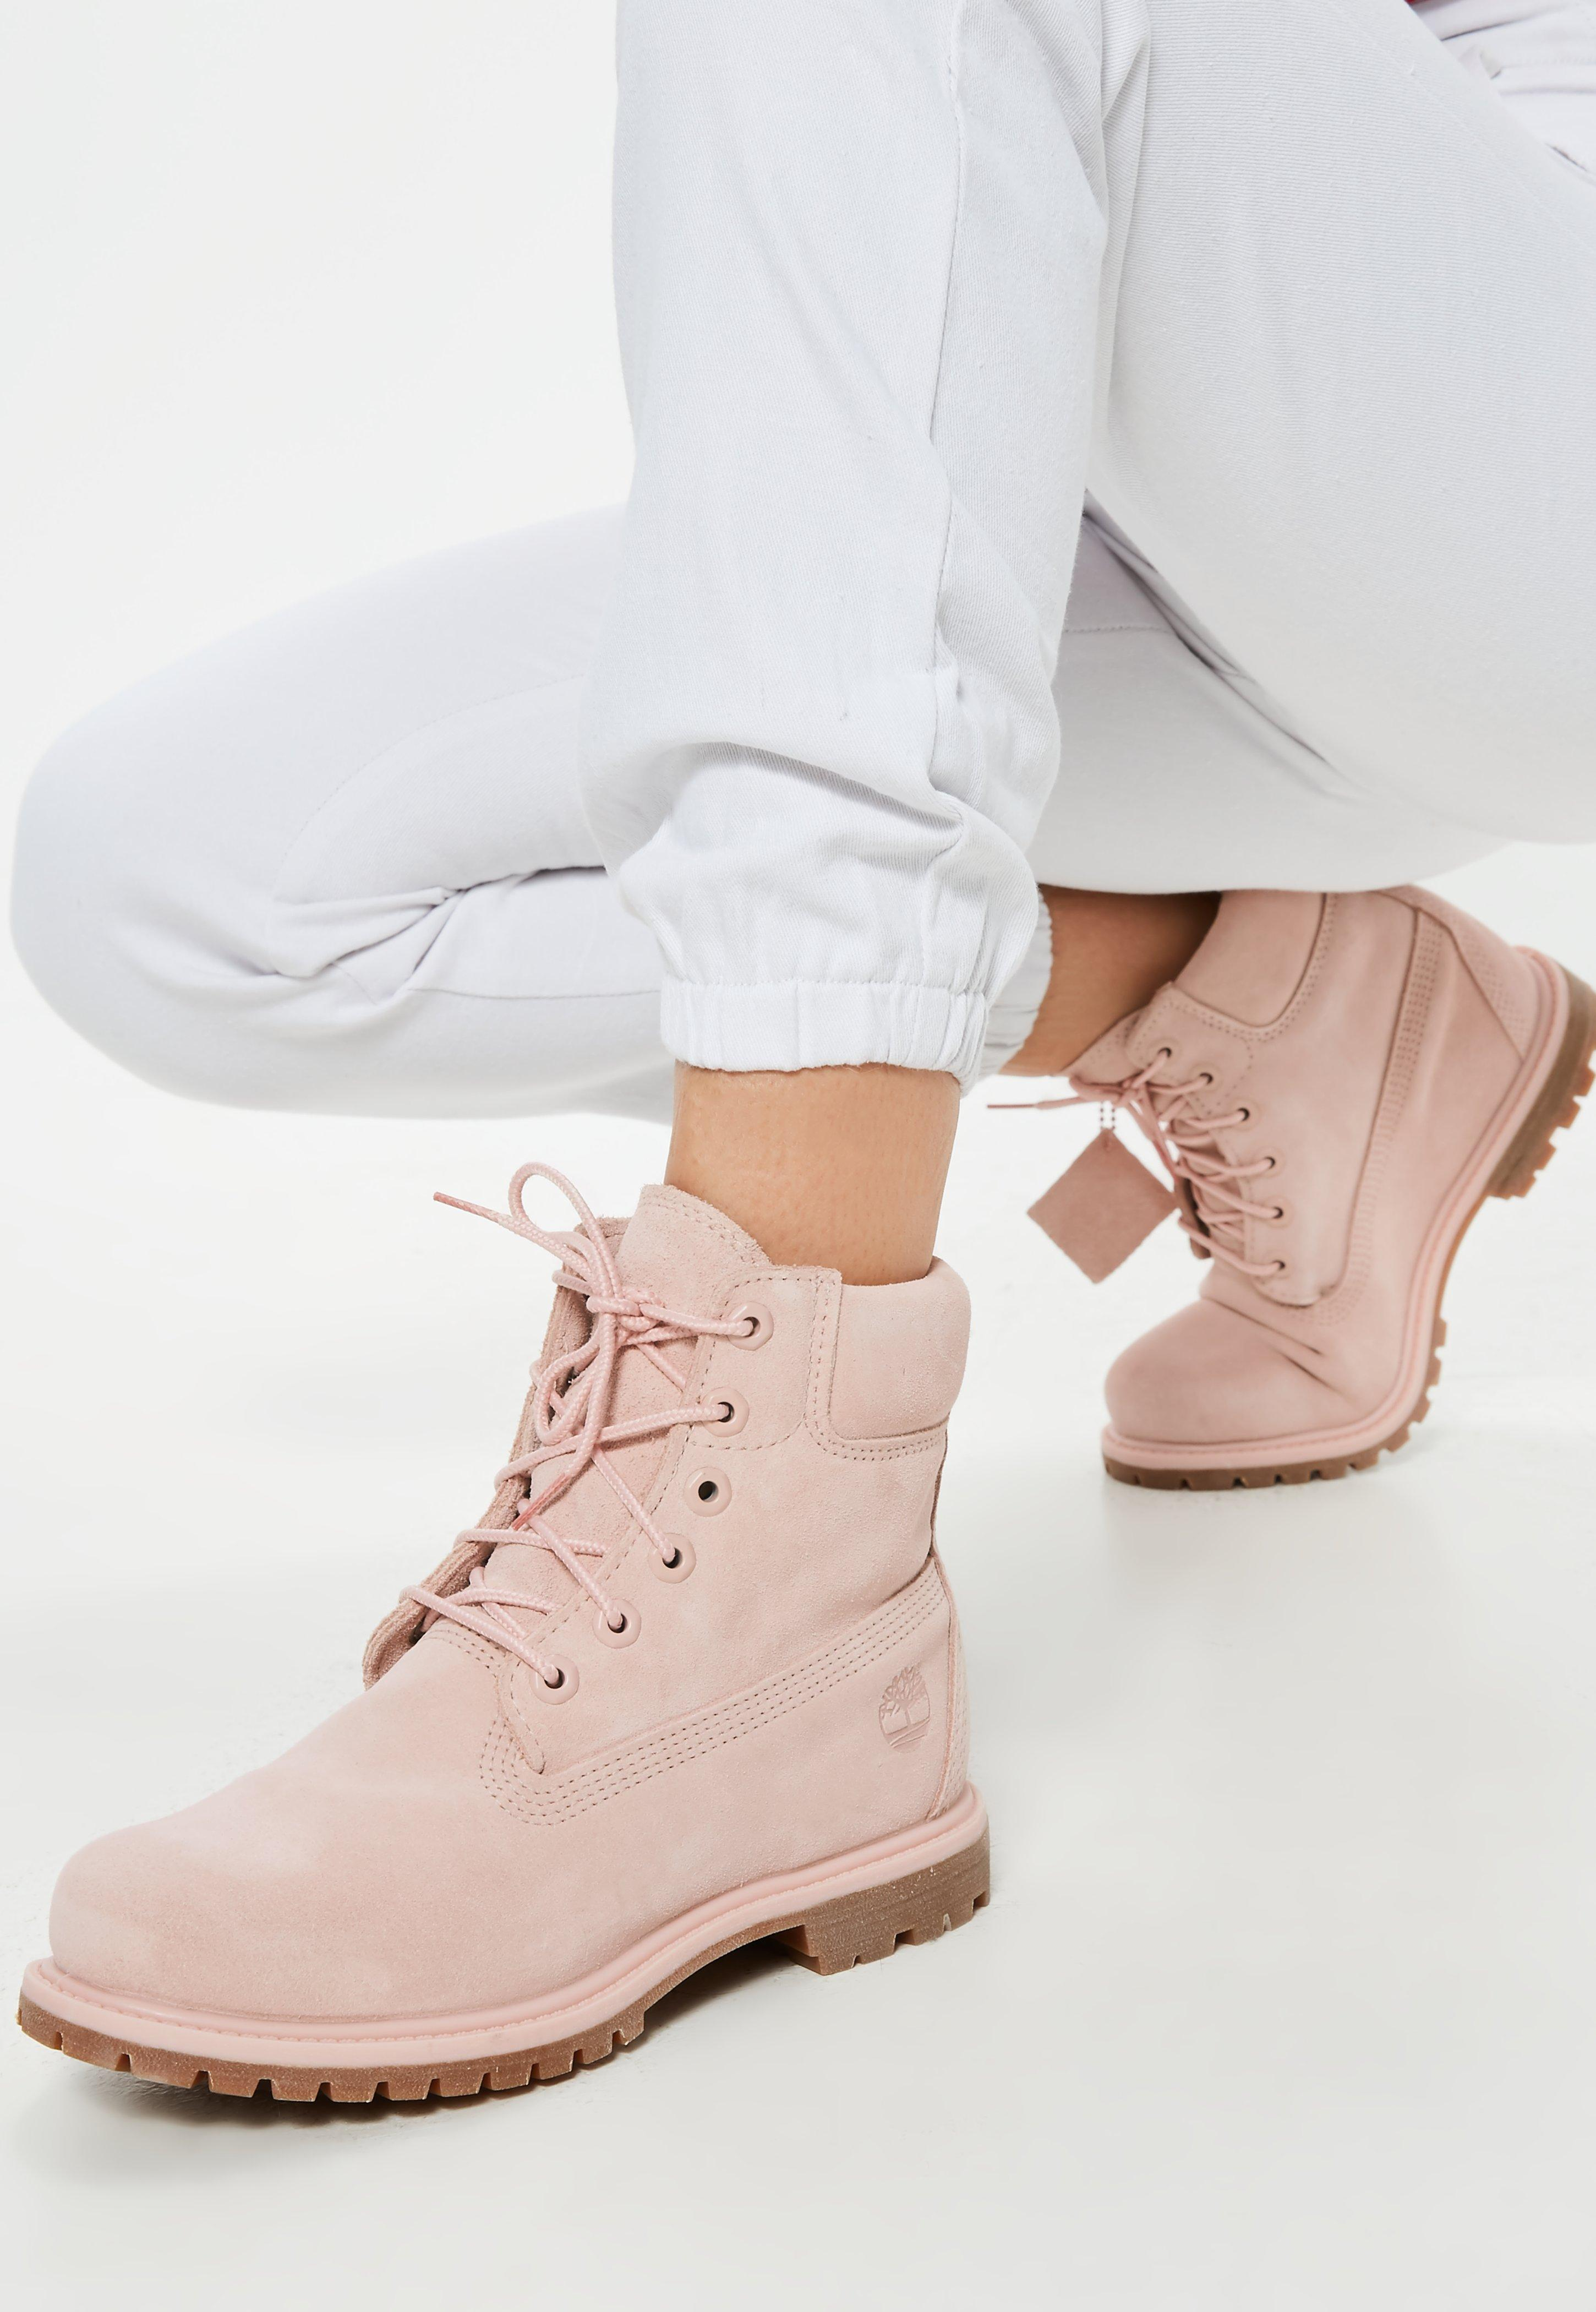 Timberland 6 Inch Premium Rose Suede Flat Boots outlet fashionable sast cheap price sale online store YYZ8J